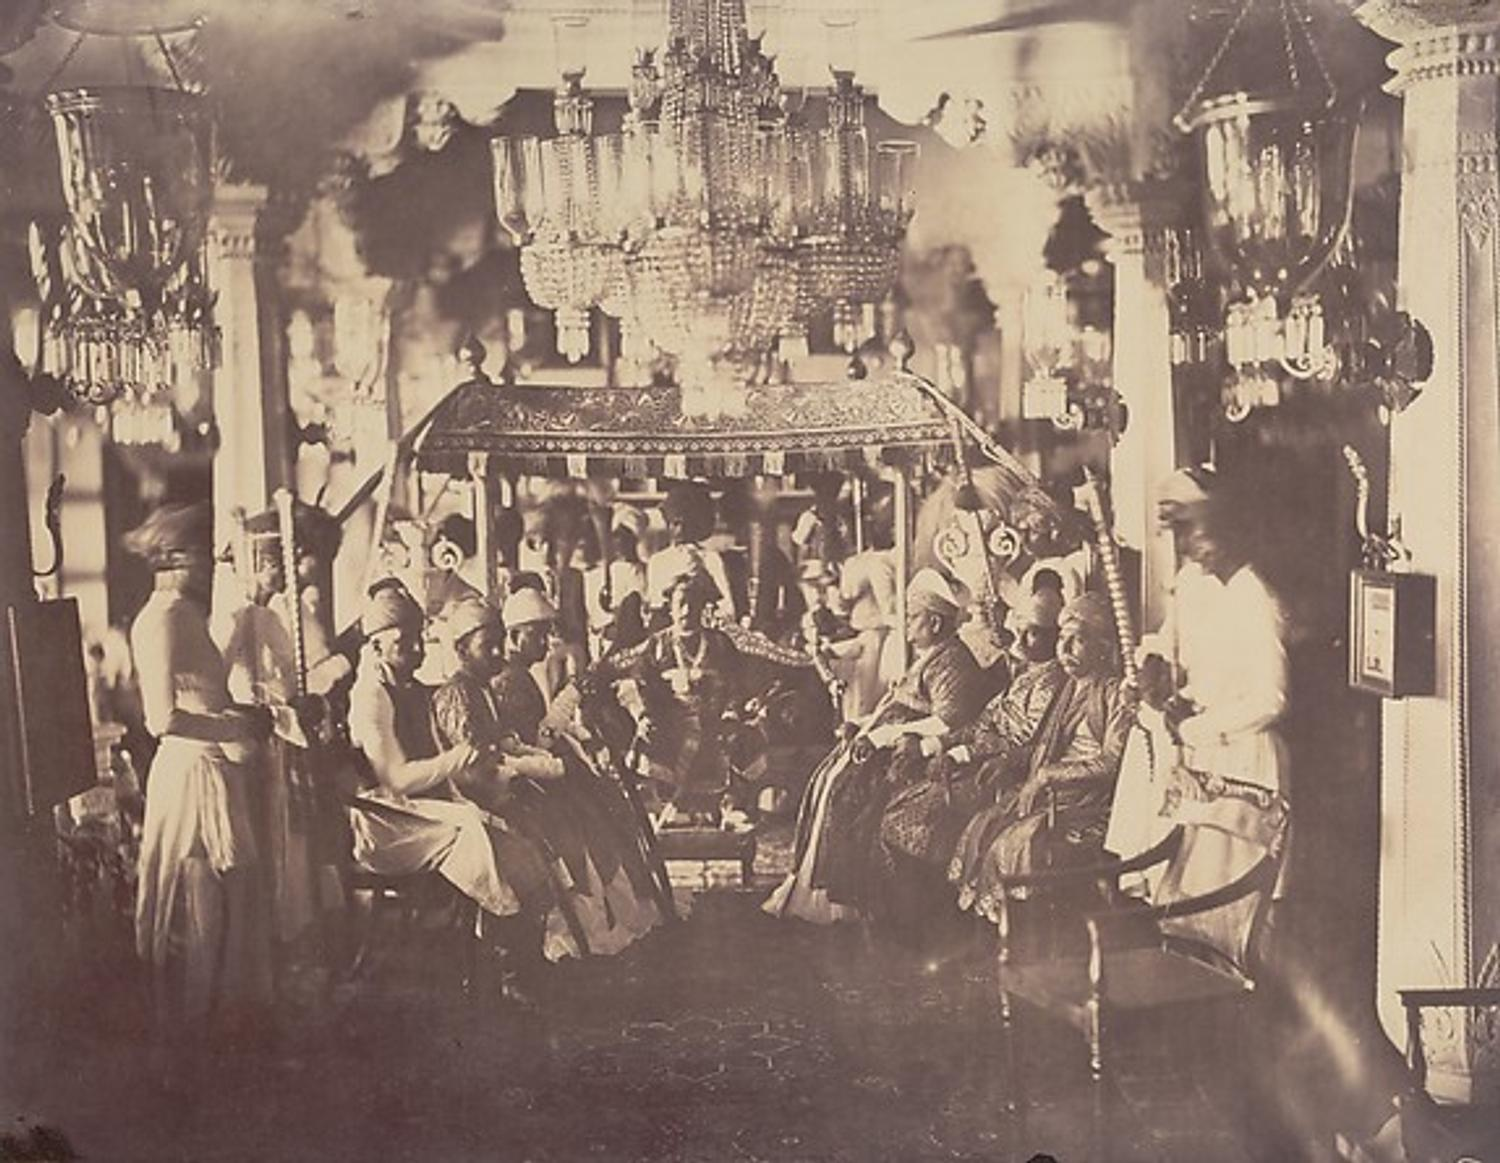 Historic Photographs Of Nineteenth Century India At The